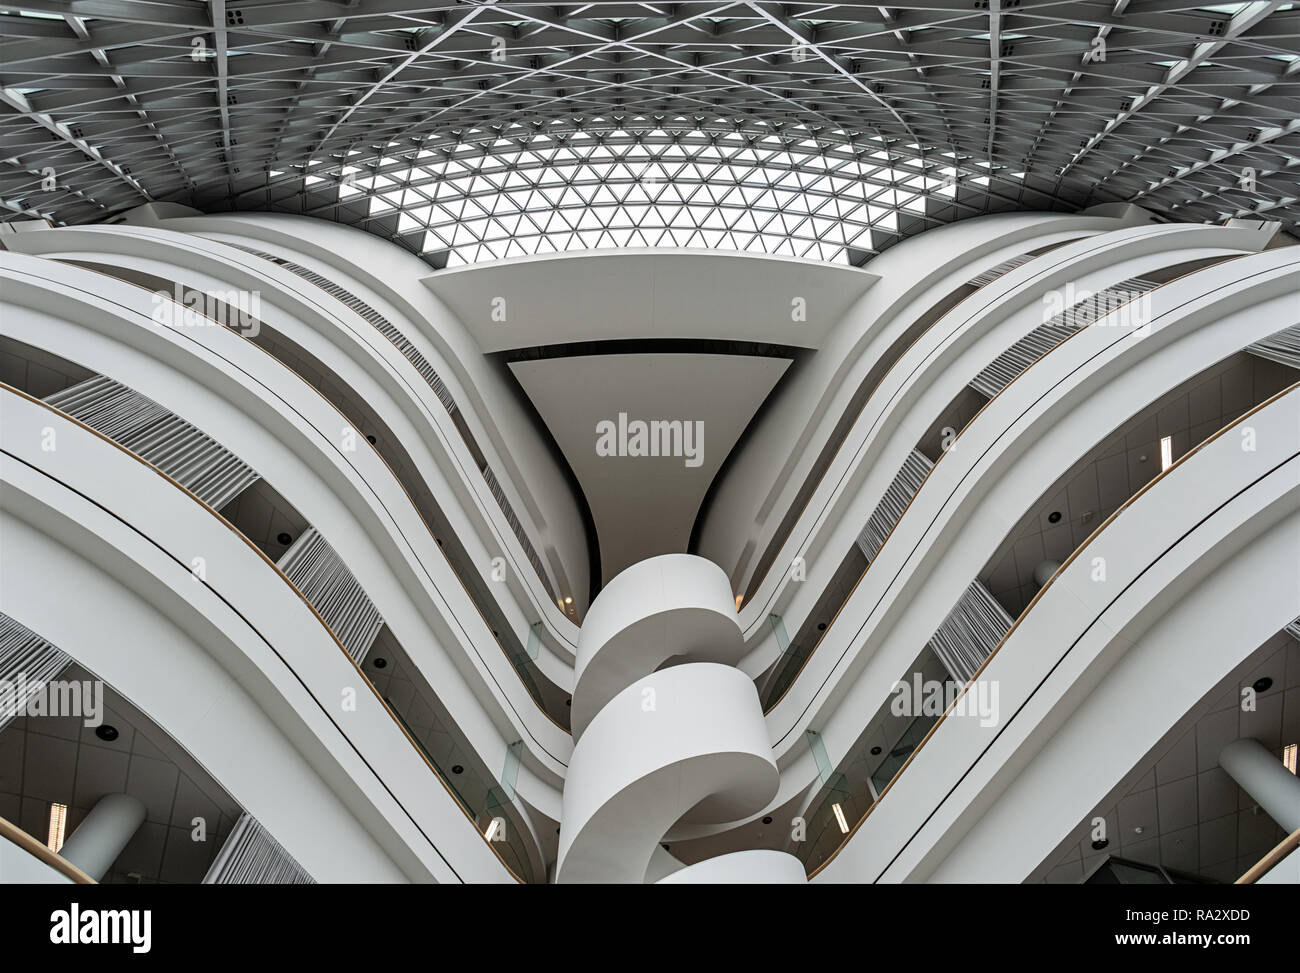 Atrium in the SAHMRI Building in Adelaide. The South Australian Health and Medical Research Institute - Stock Image